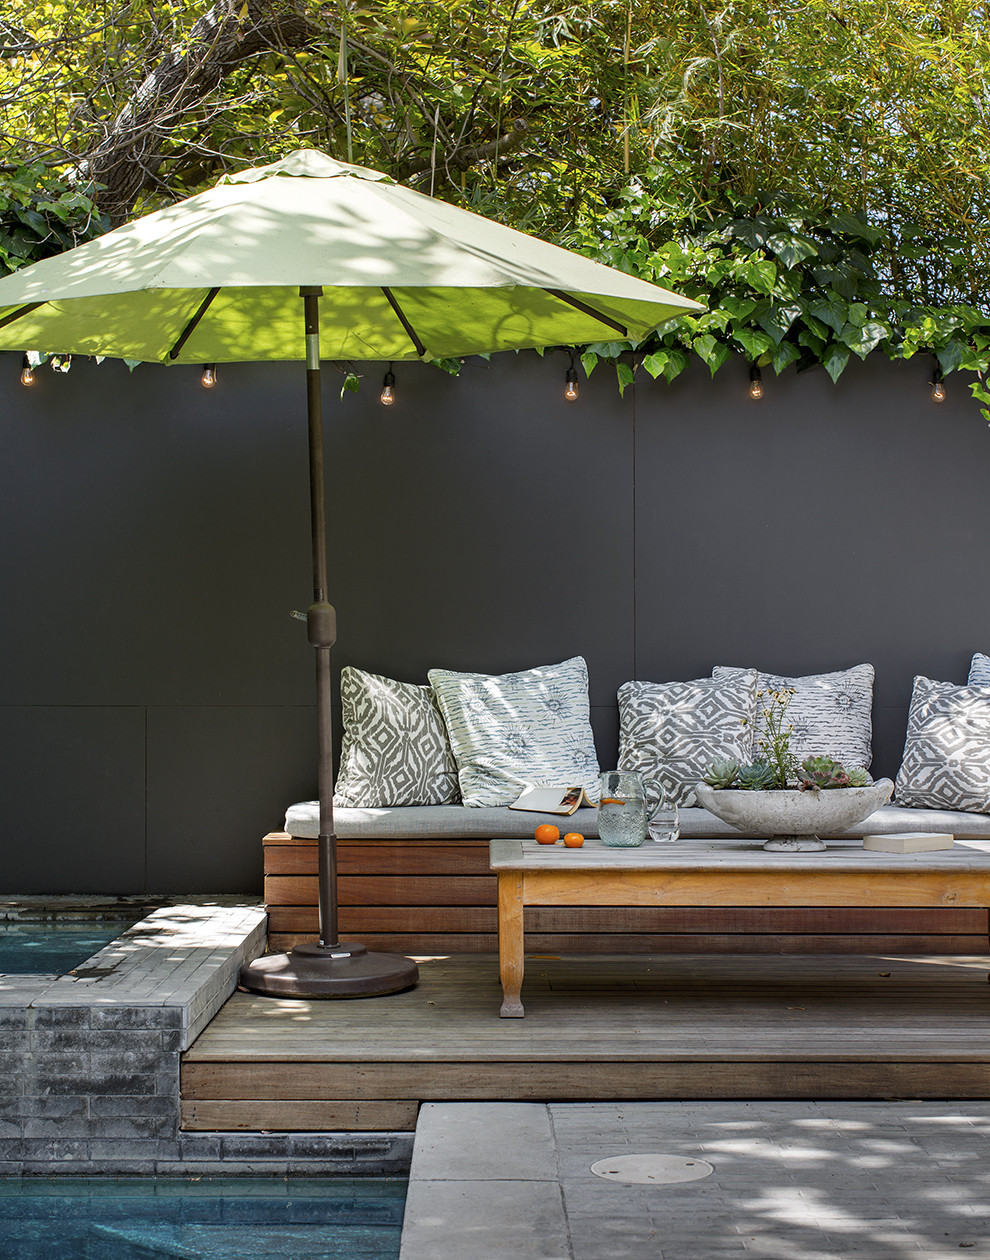 Sun shade outdoor patio design ideas lonny for Small patio shade ideas